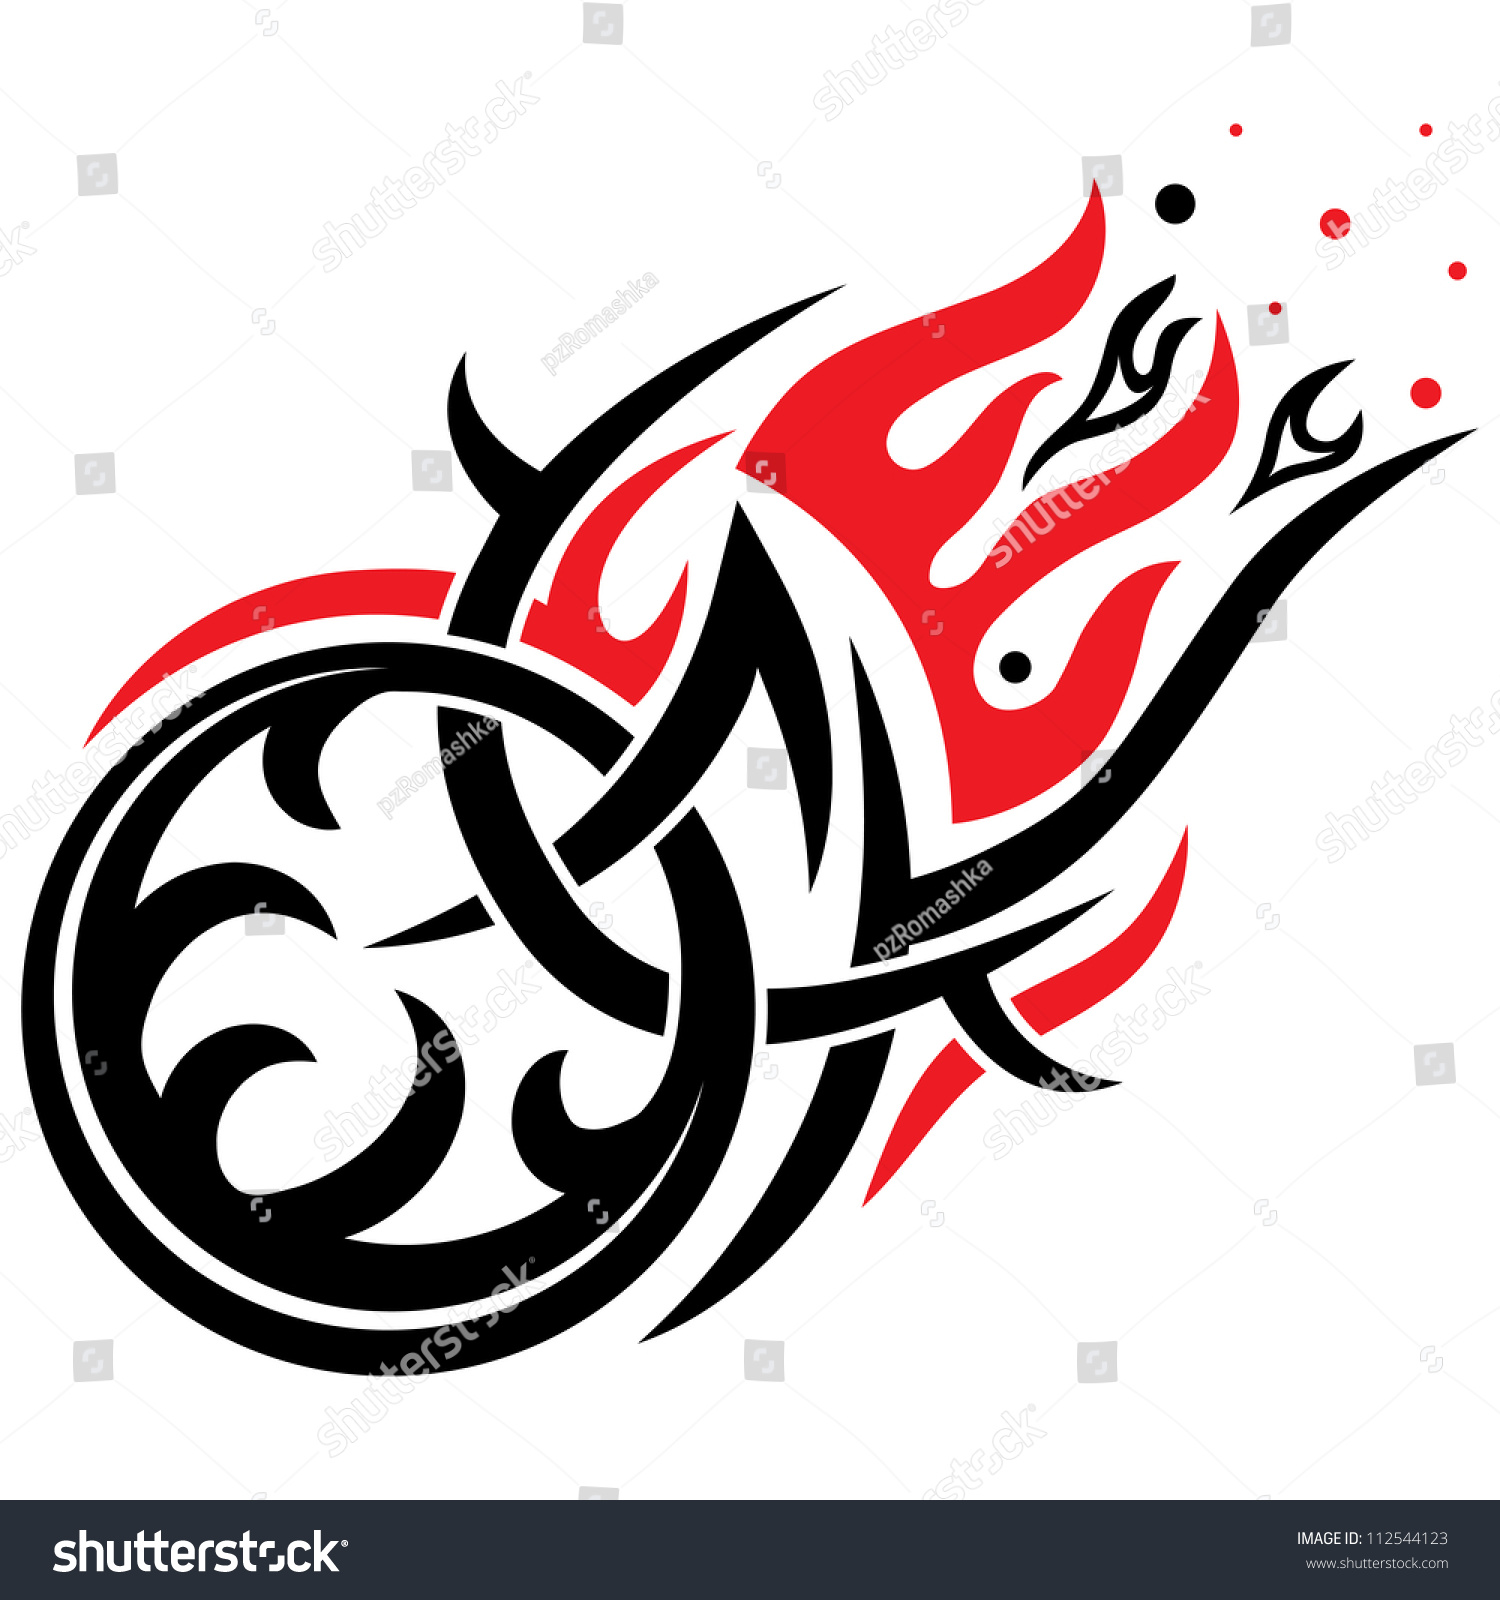 Motorcycle clip art with flames - Stylized Motorcycle Wheel With Flames Vector Gothic Black And Red Pattern